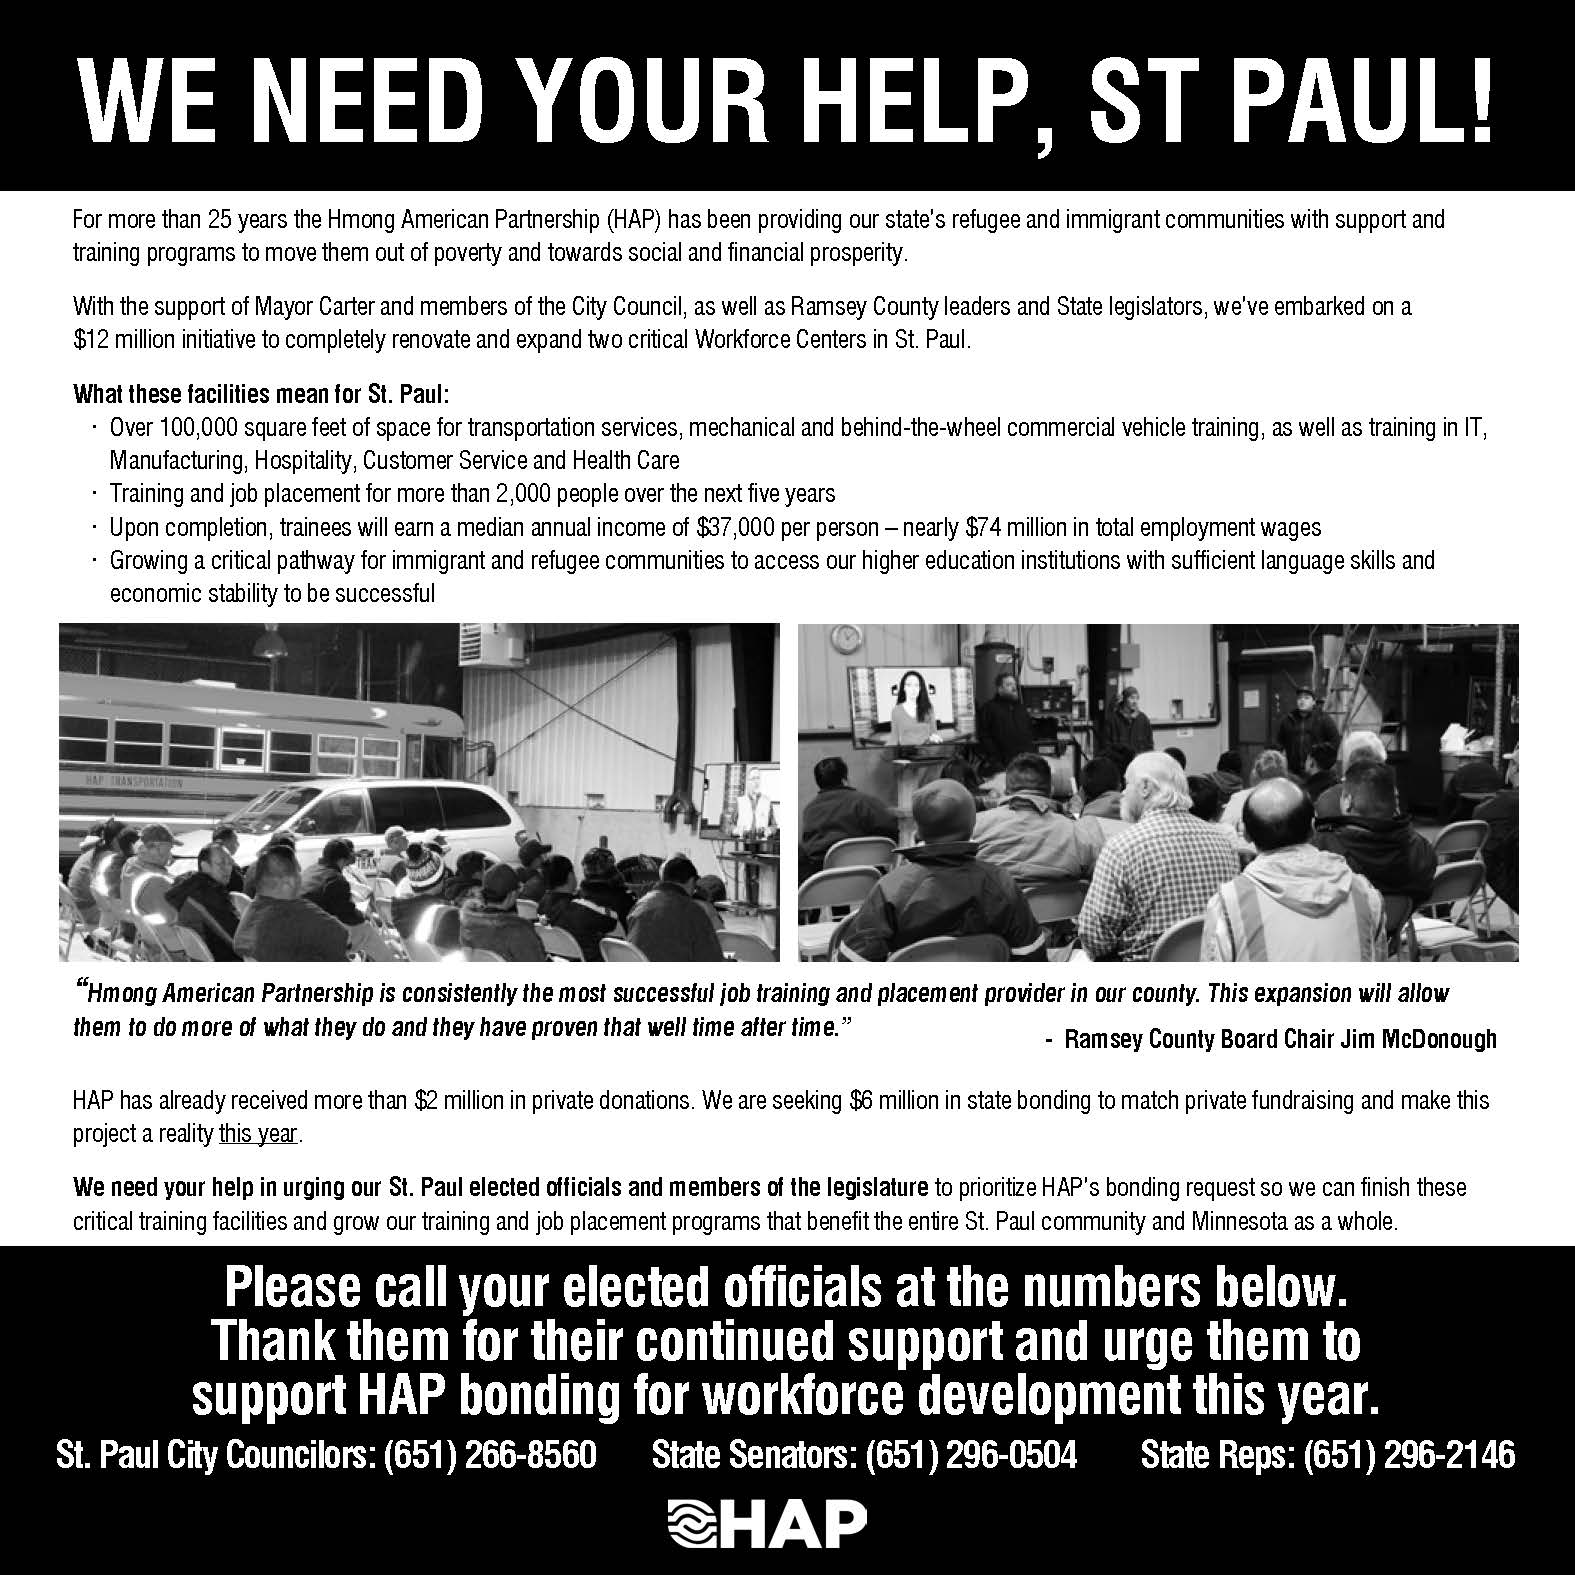 We Need Your Help! – Critical Workforce Centers for Saint Paul